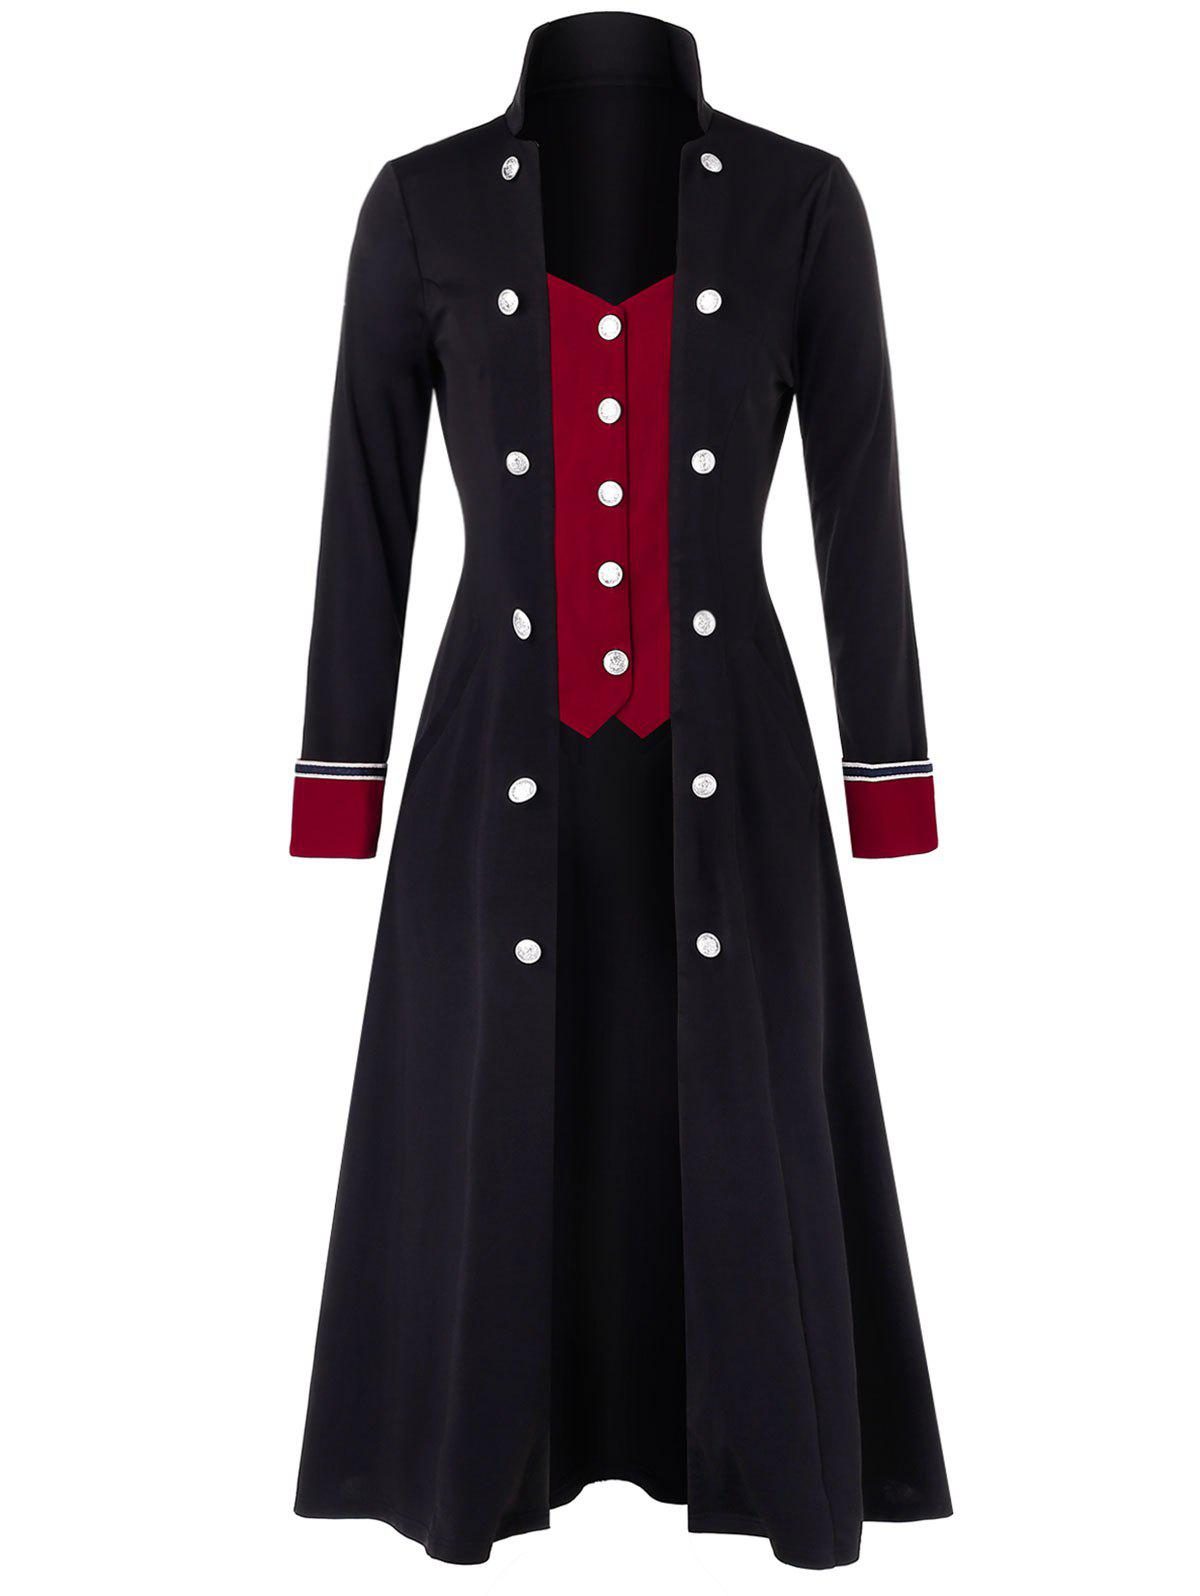 Plus Size Two Tone Buttoned Long Stand Up Collar Coat - multicolor 3X